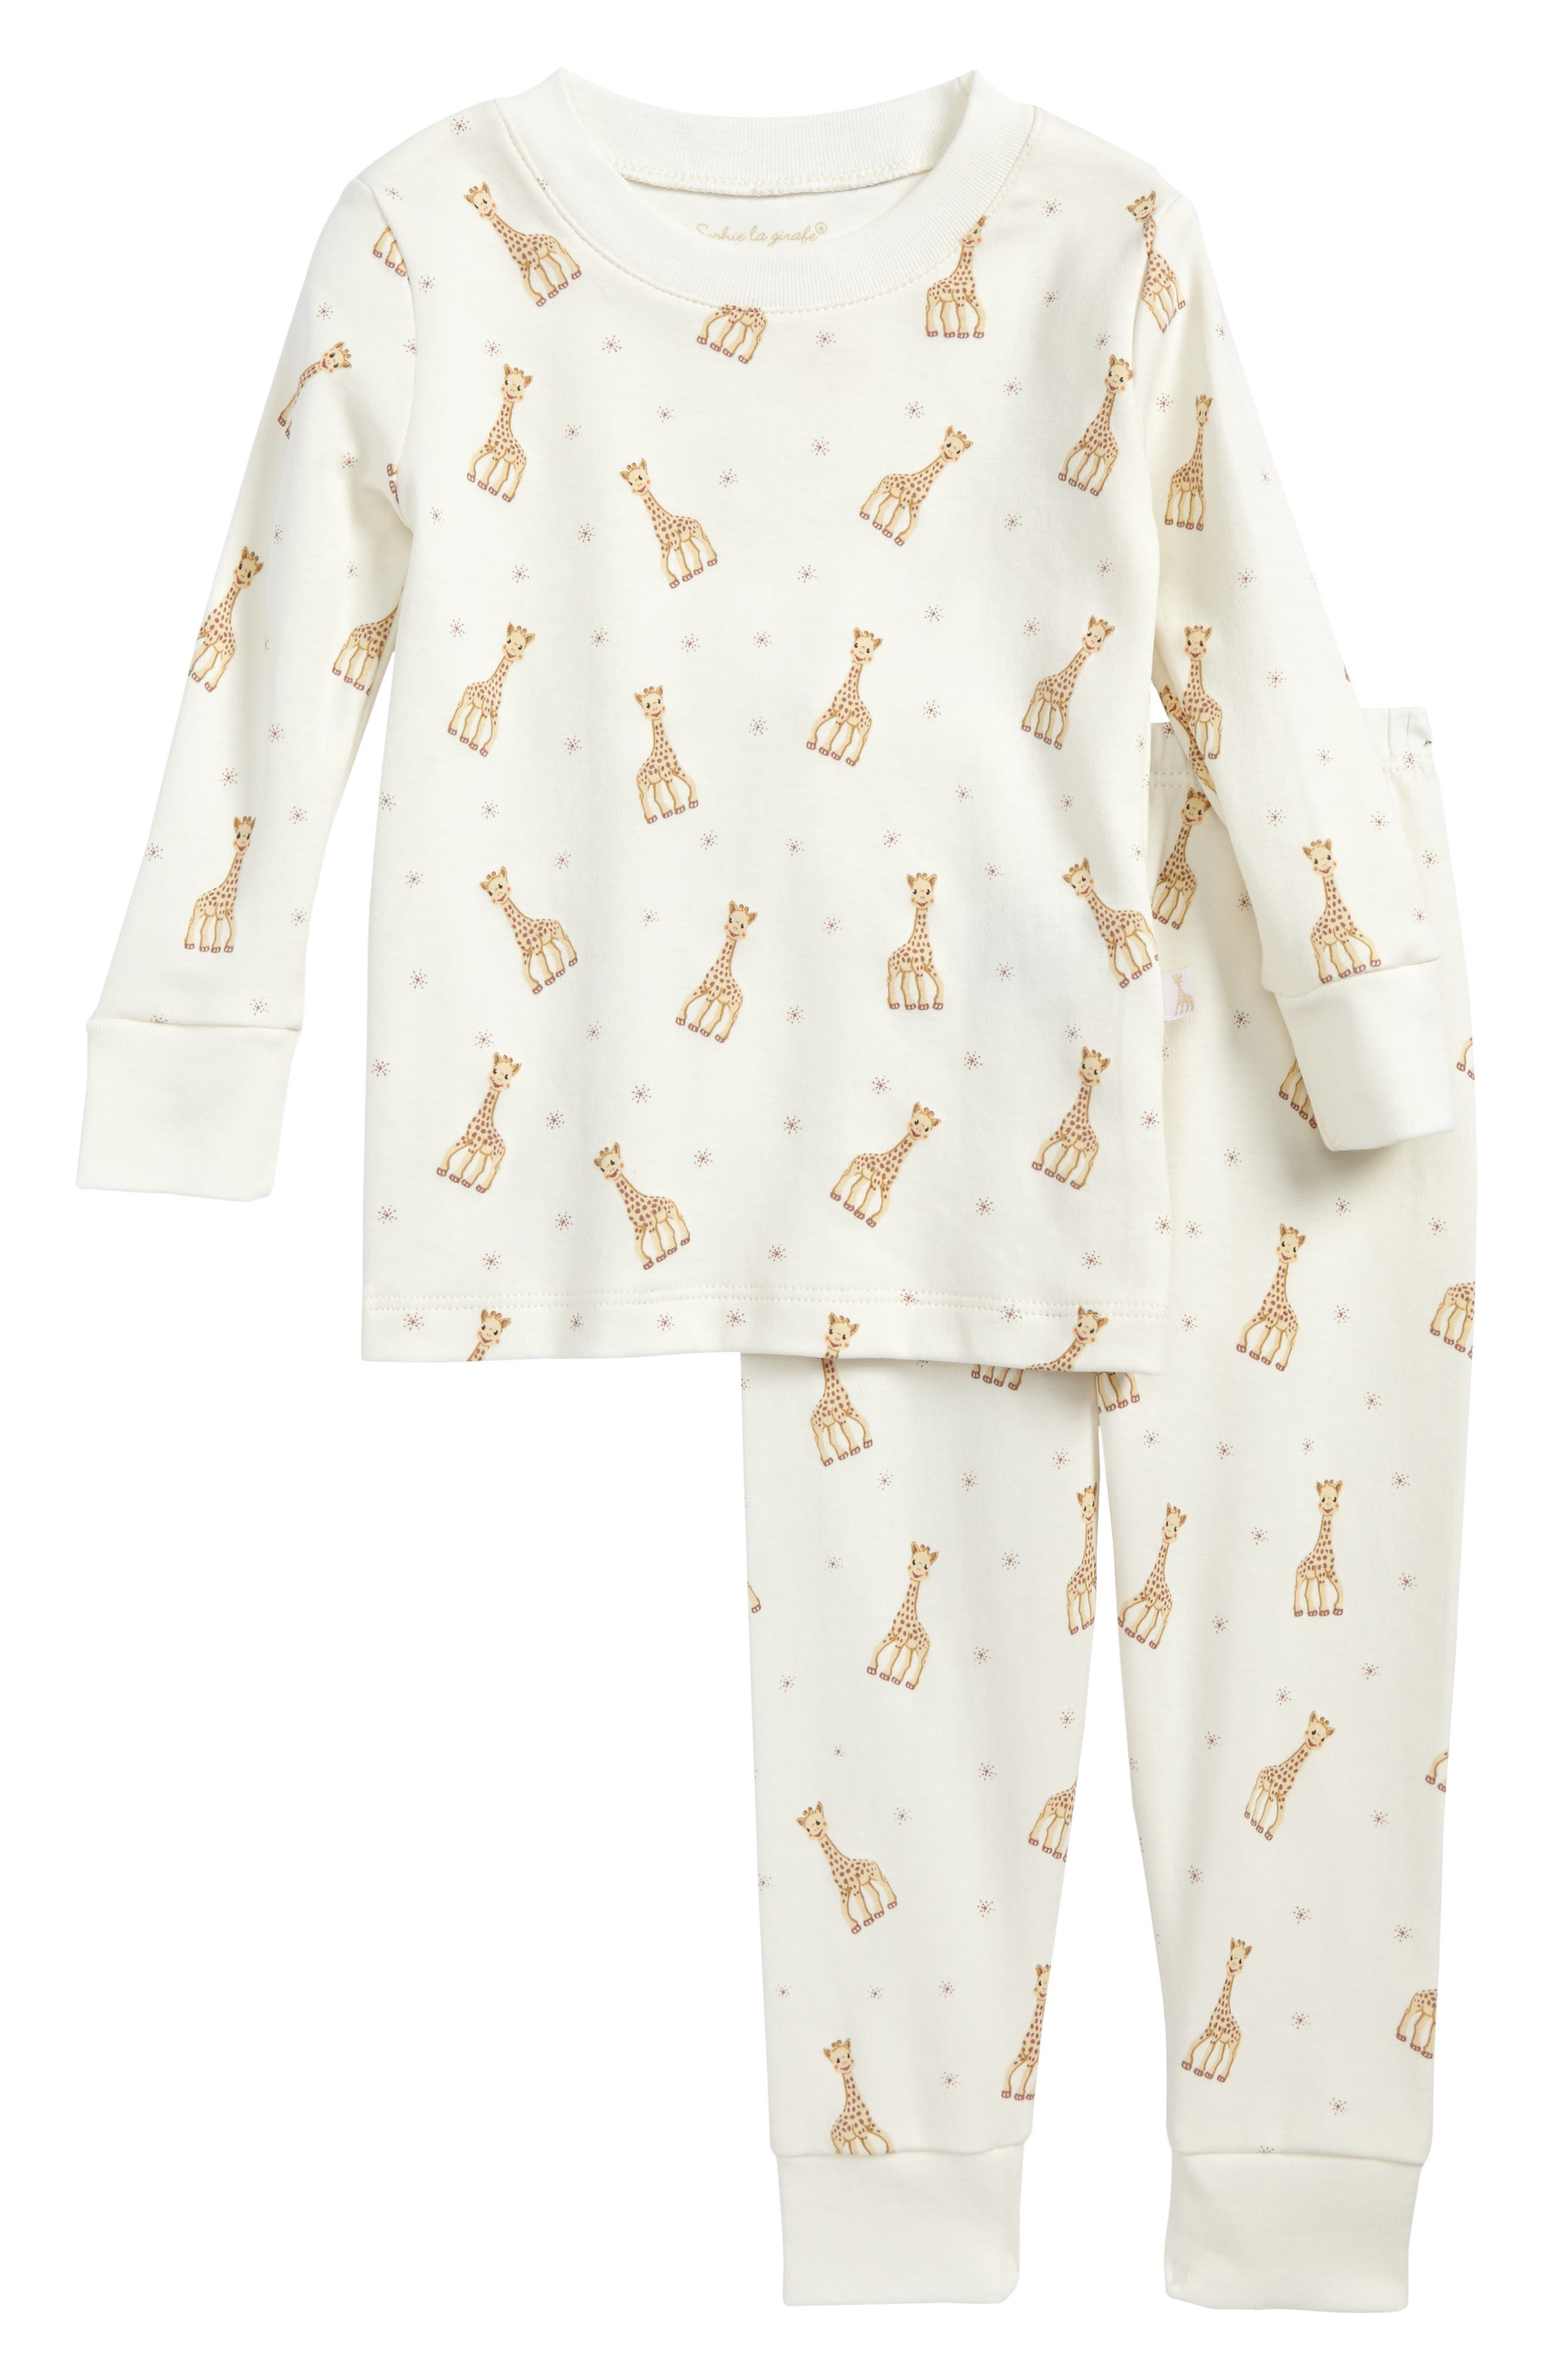 Sophie la Girafe Fitted Two-Piece Pajamas,                             Main thumbnail 1, color,                             750